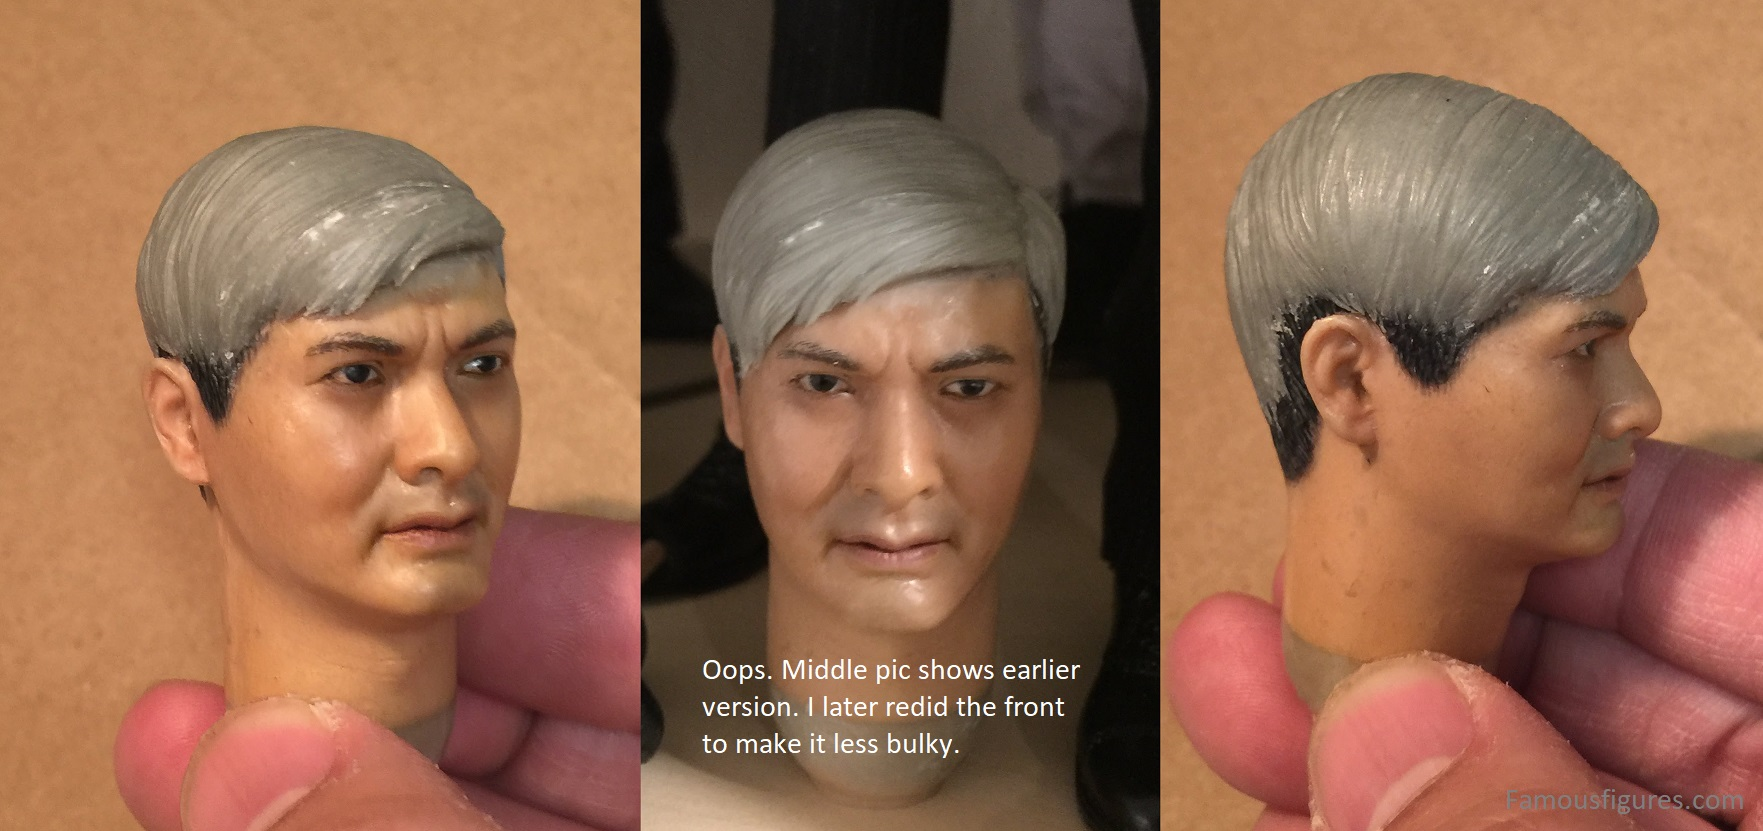 Chow Yun Fat in The Replacement Killers - Hair Sculpting Experiments 03_chowyunfat_head_replacementkillers